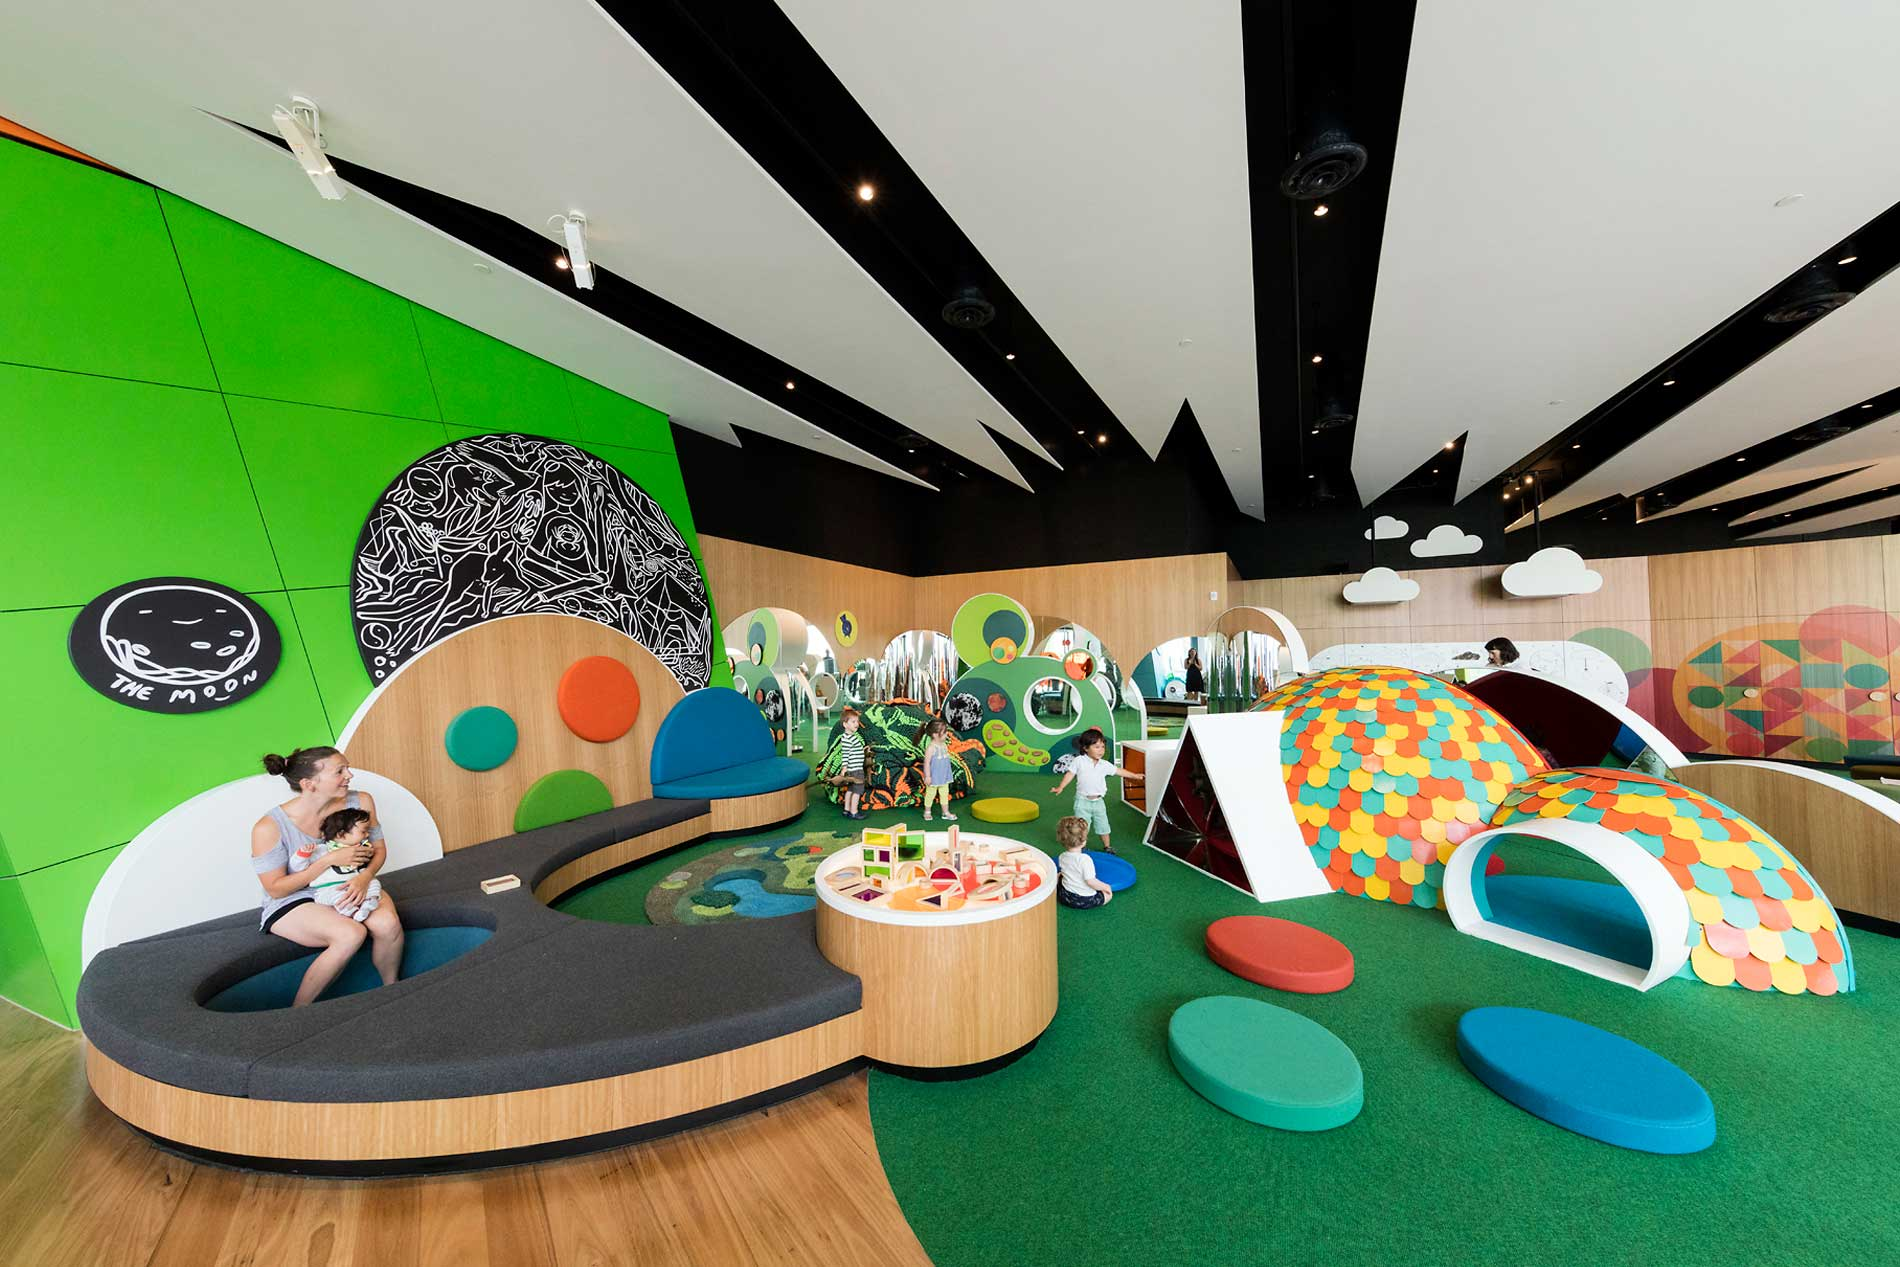 Melbourne Museum Kids Exhibition With Corian